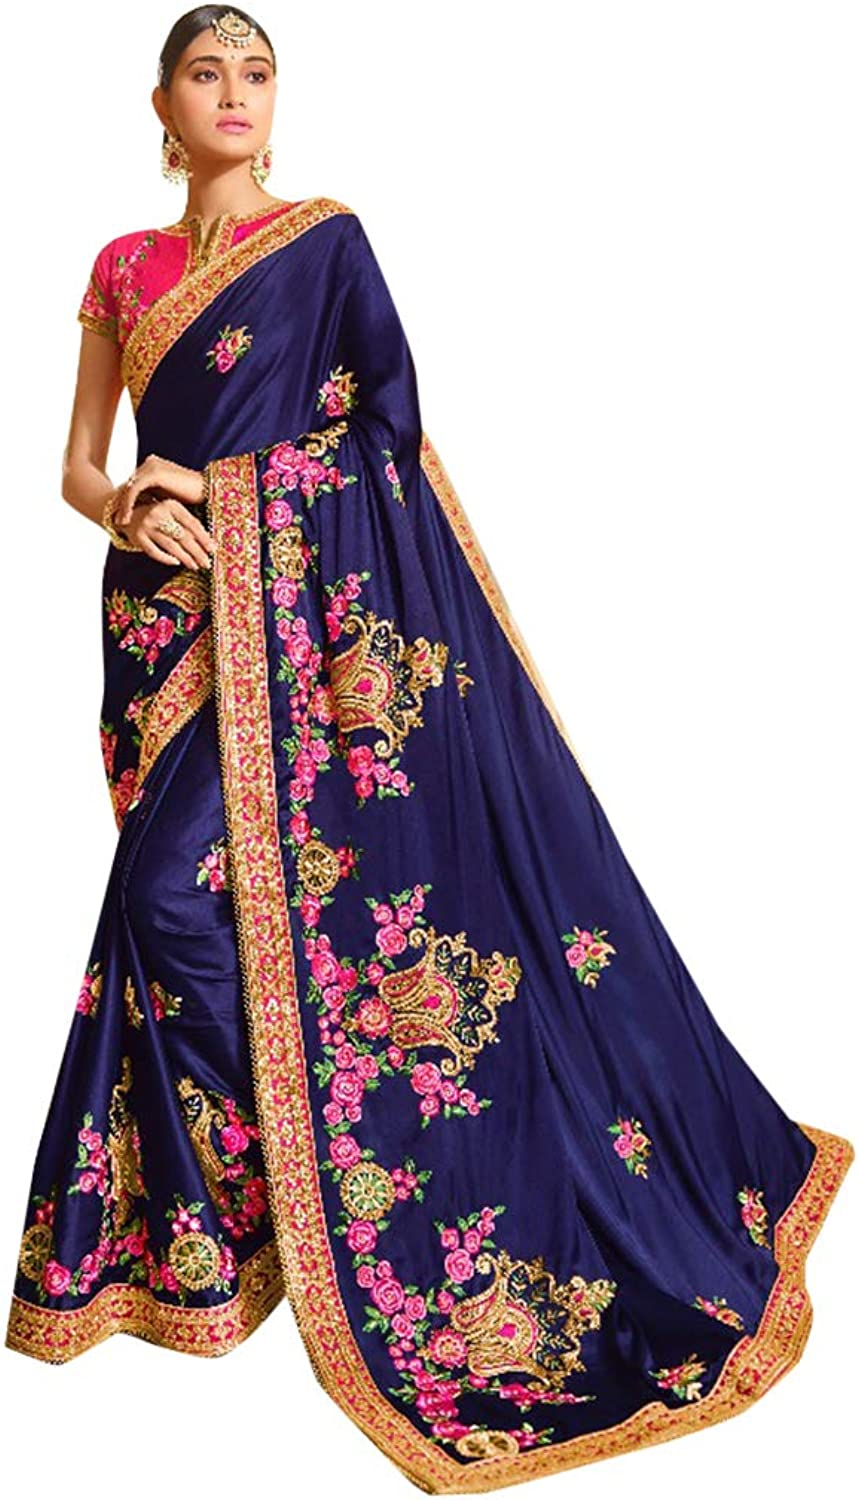 bluee Silk Party Wear Collection of Designer Saree with Stylish Heavy Border Contrast Blouse Sari Indian Ethnic Women 754